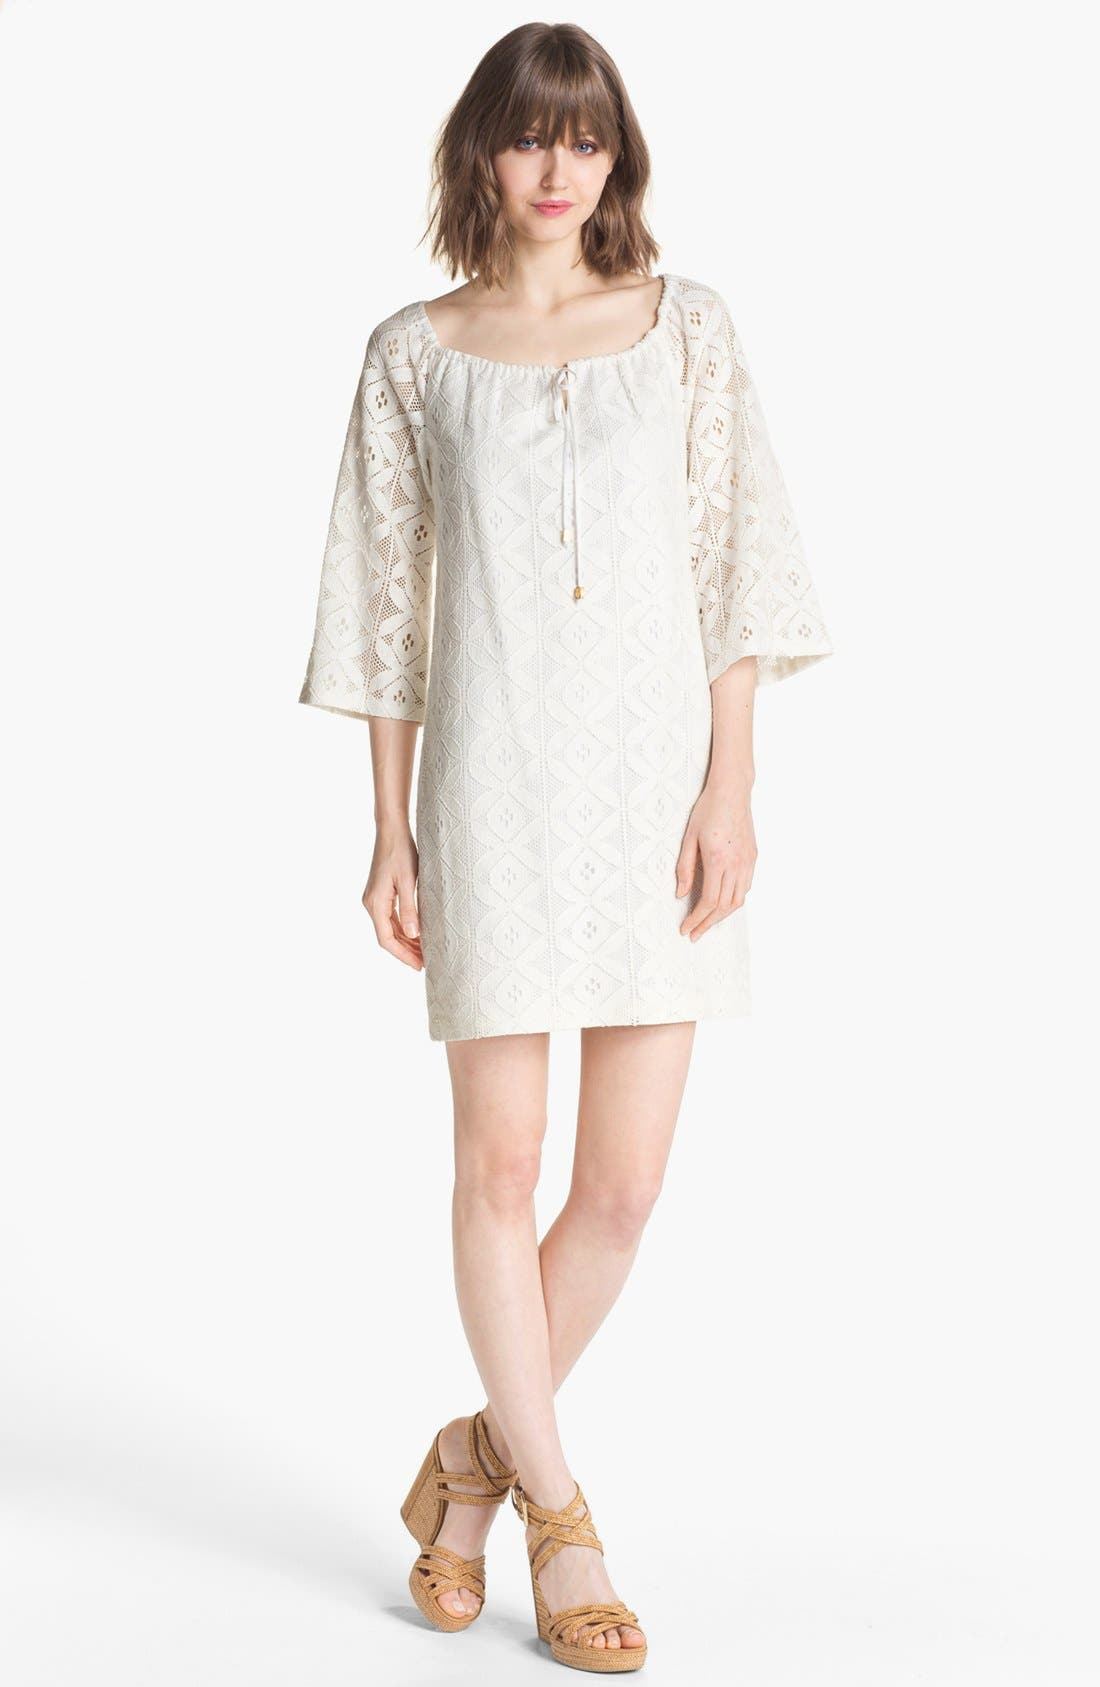 Alternate Image 1 Selected - Trina Turk 'Amplify' Bell Sleeve Lace Shift Dress